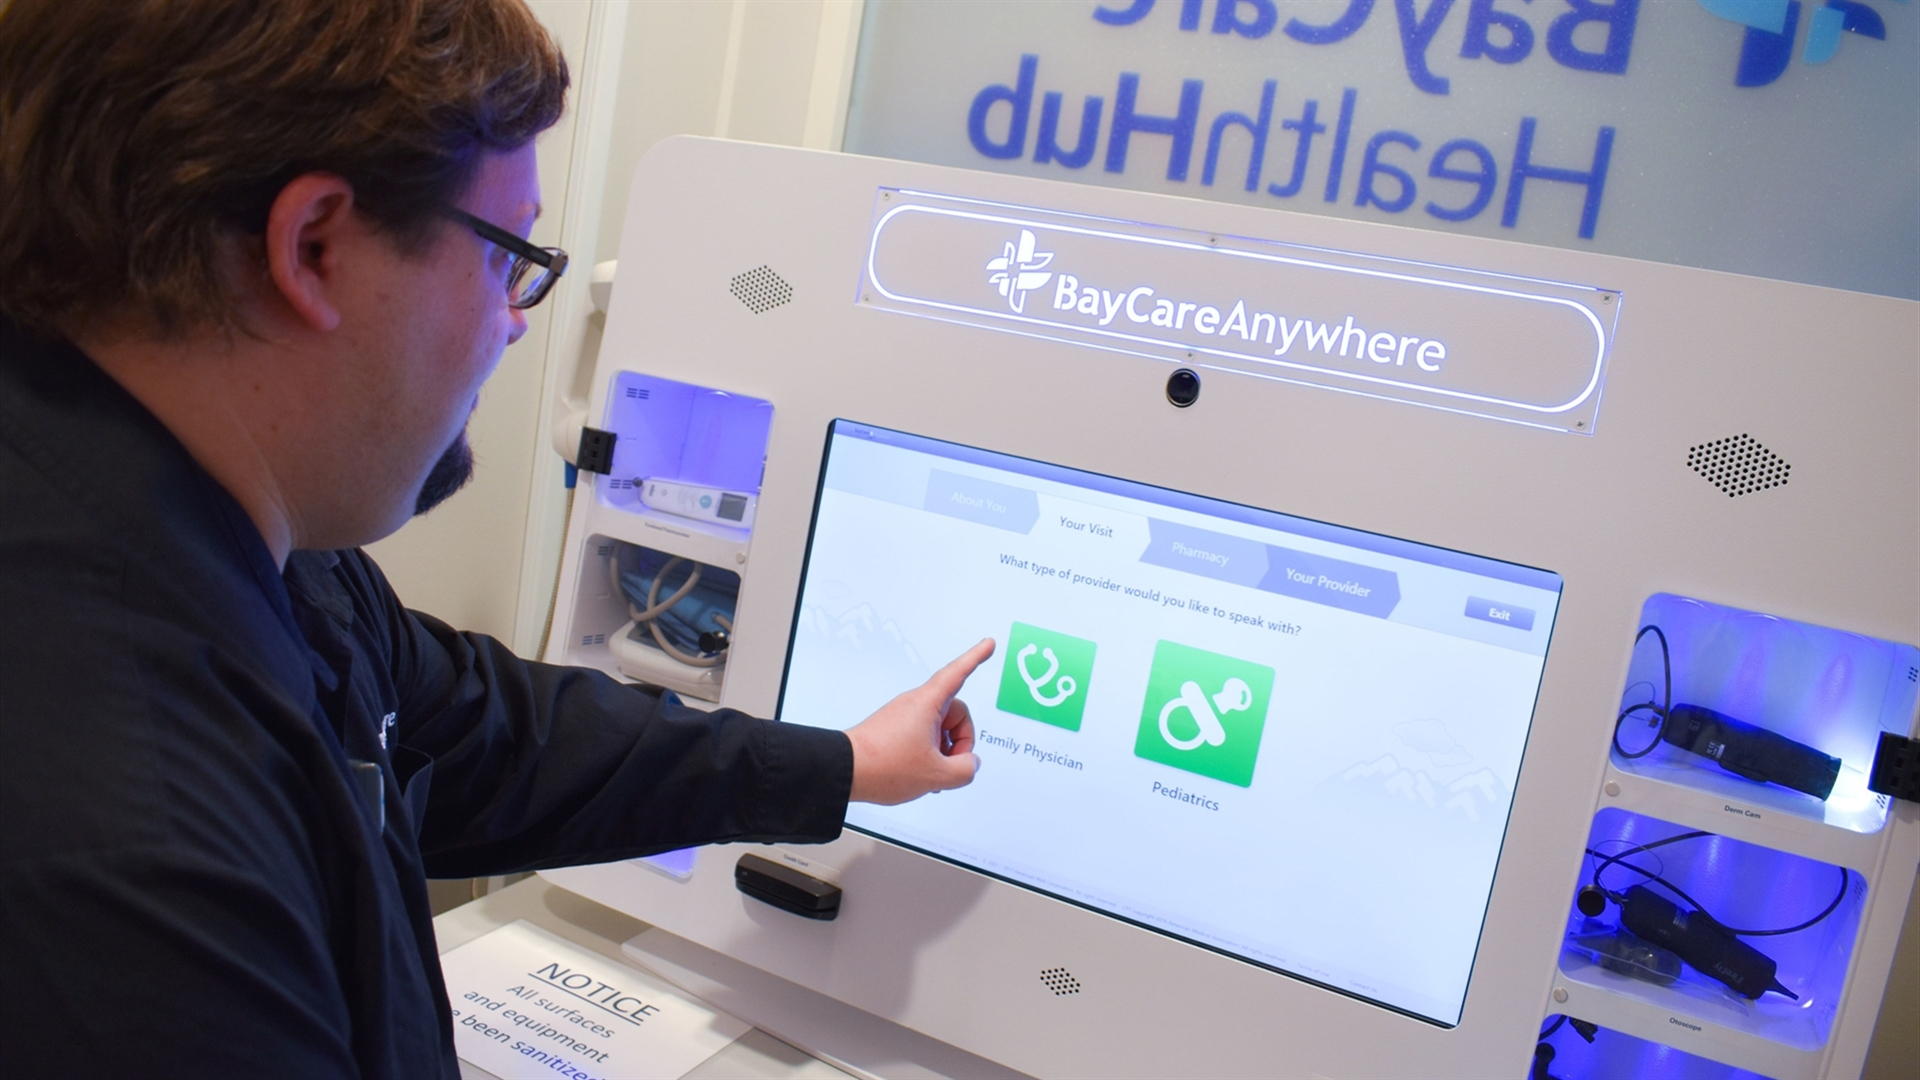 BayCare Opens First Telehealth Kiosk at Local YMCA